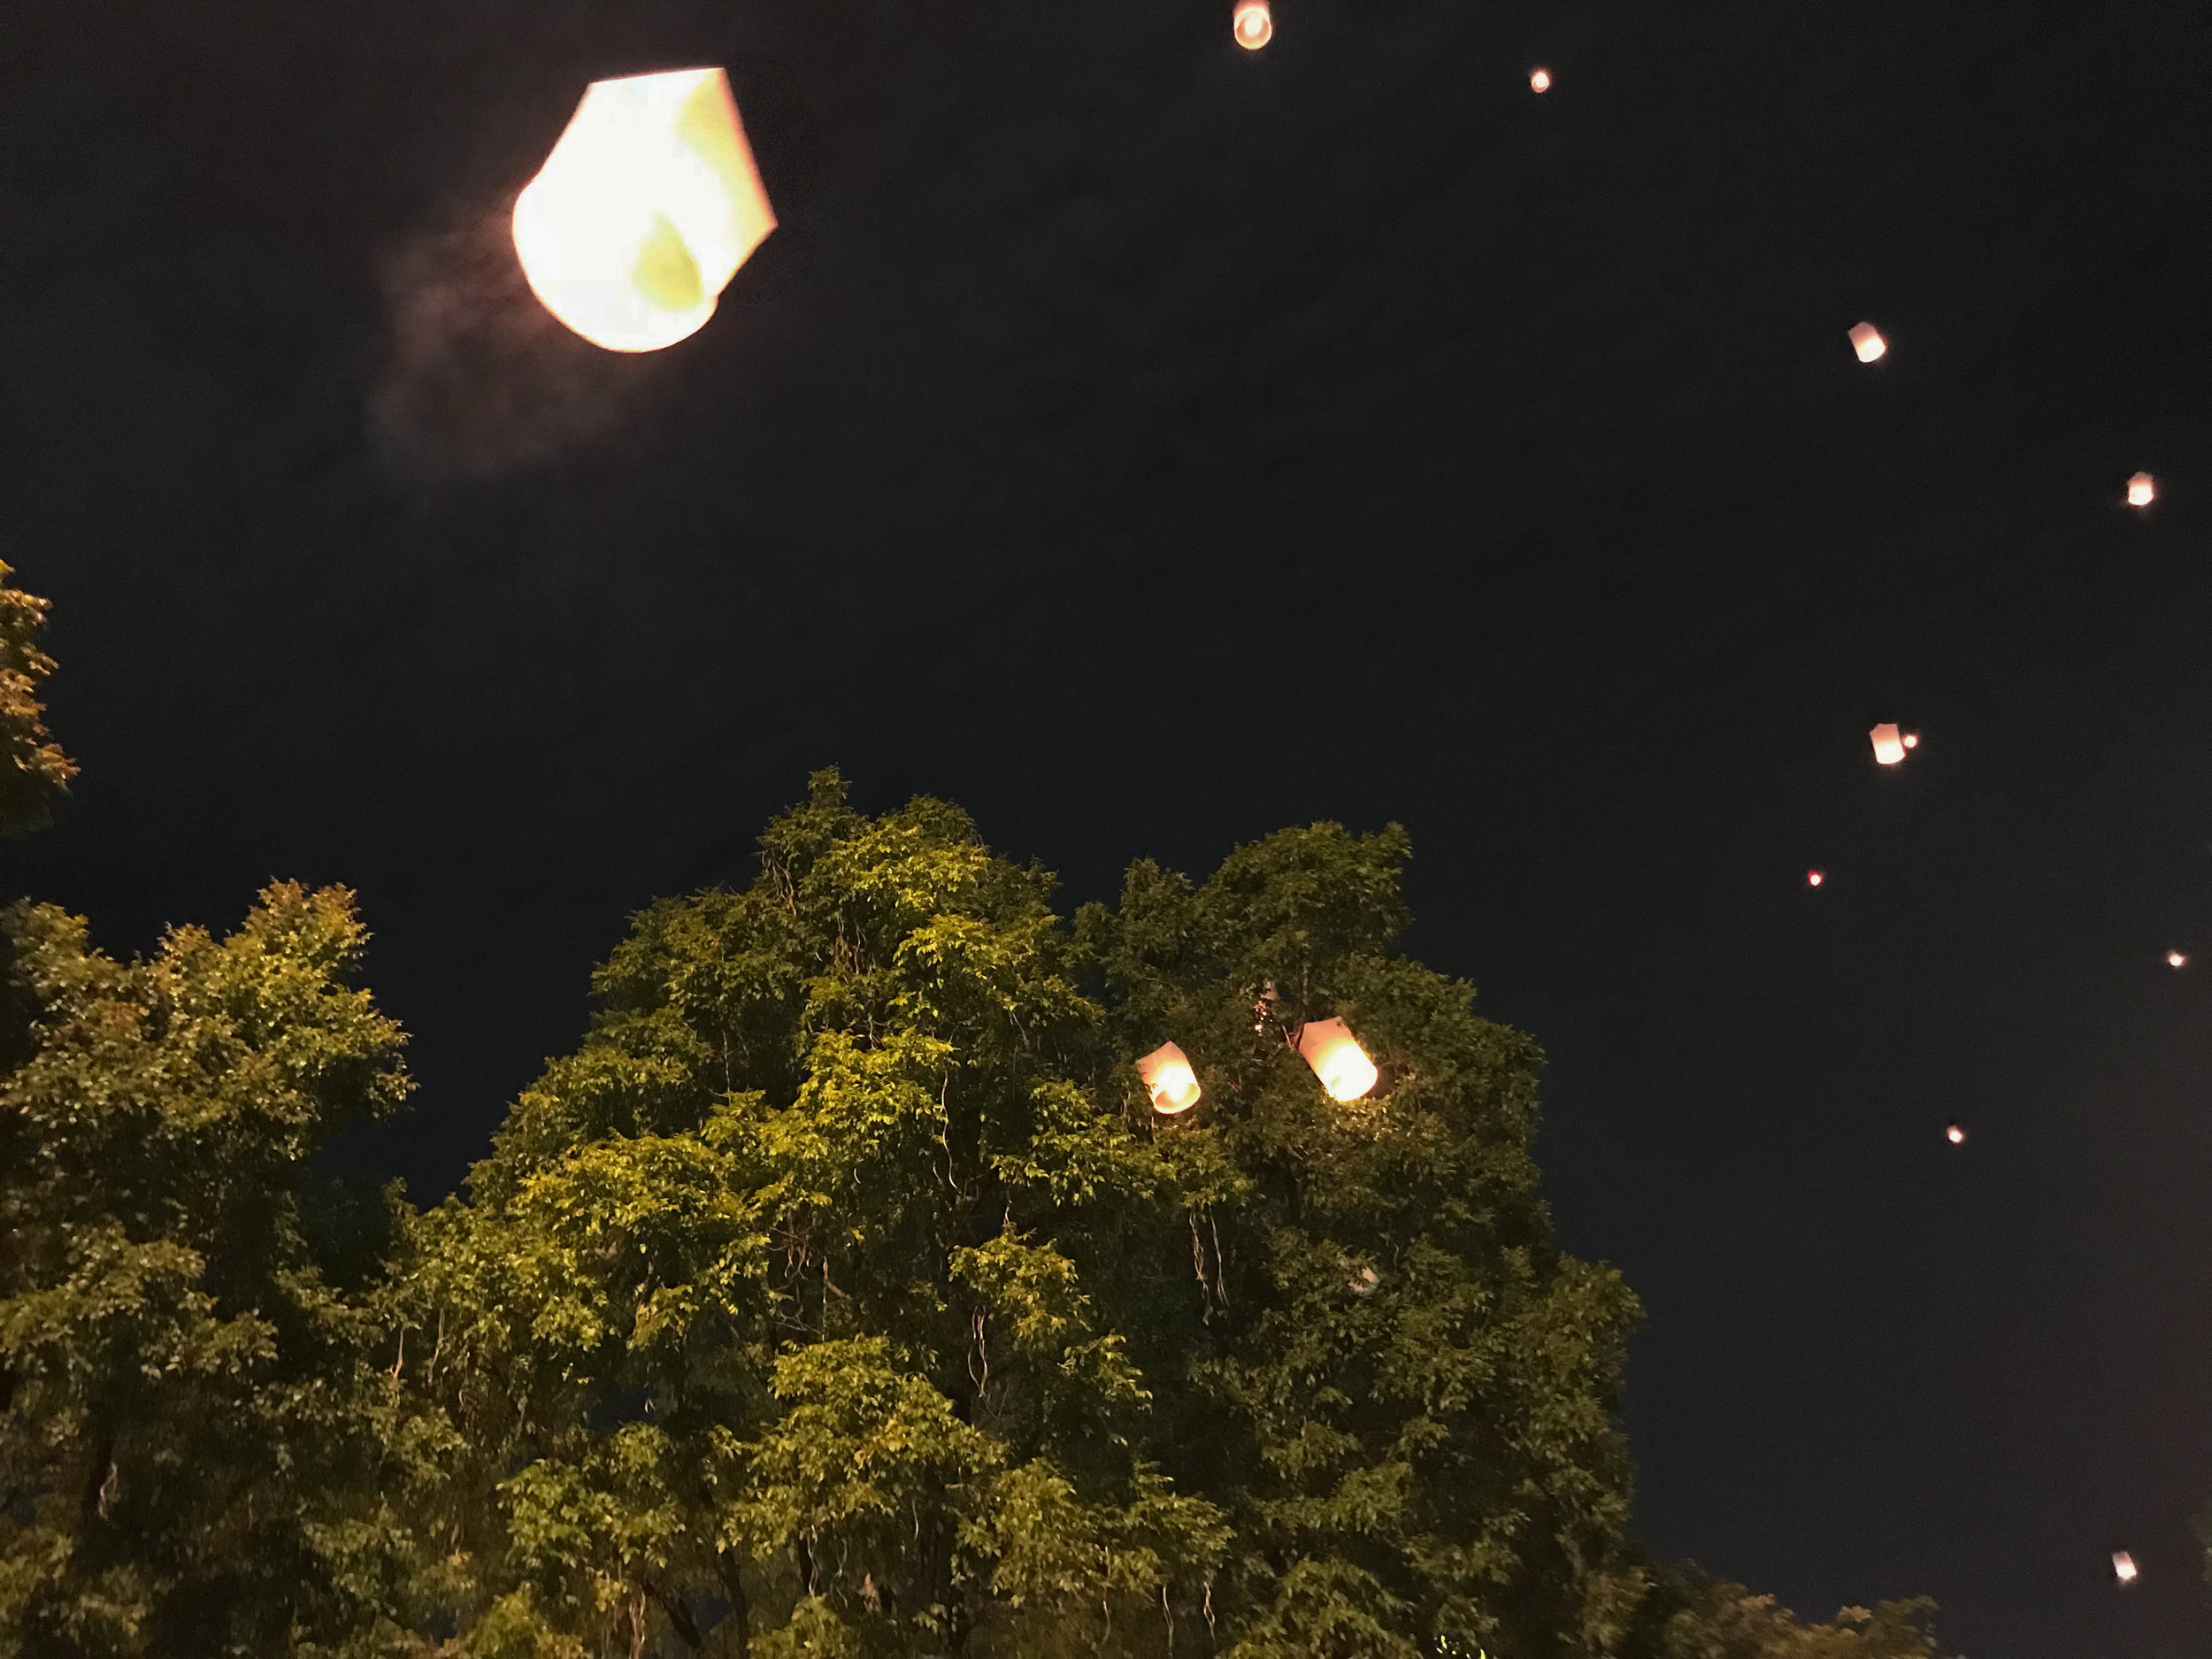 Thailand - Chiang Mai - New Years Eve - Floating lanterns in the trees